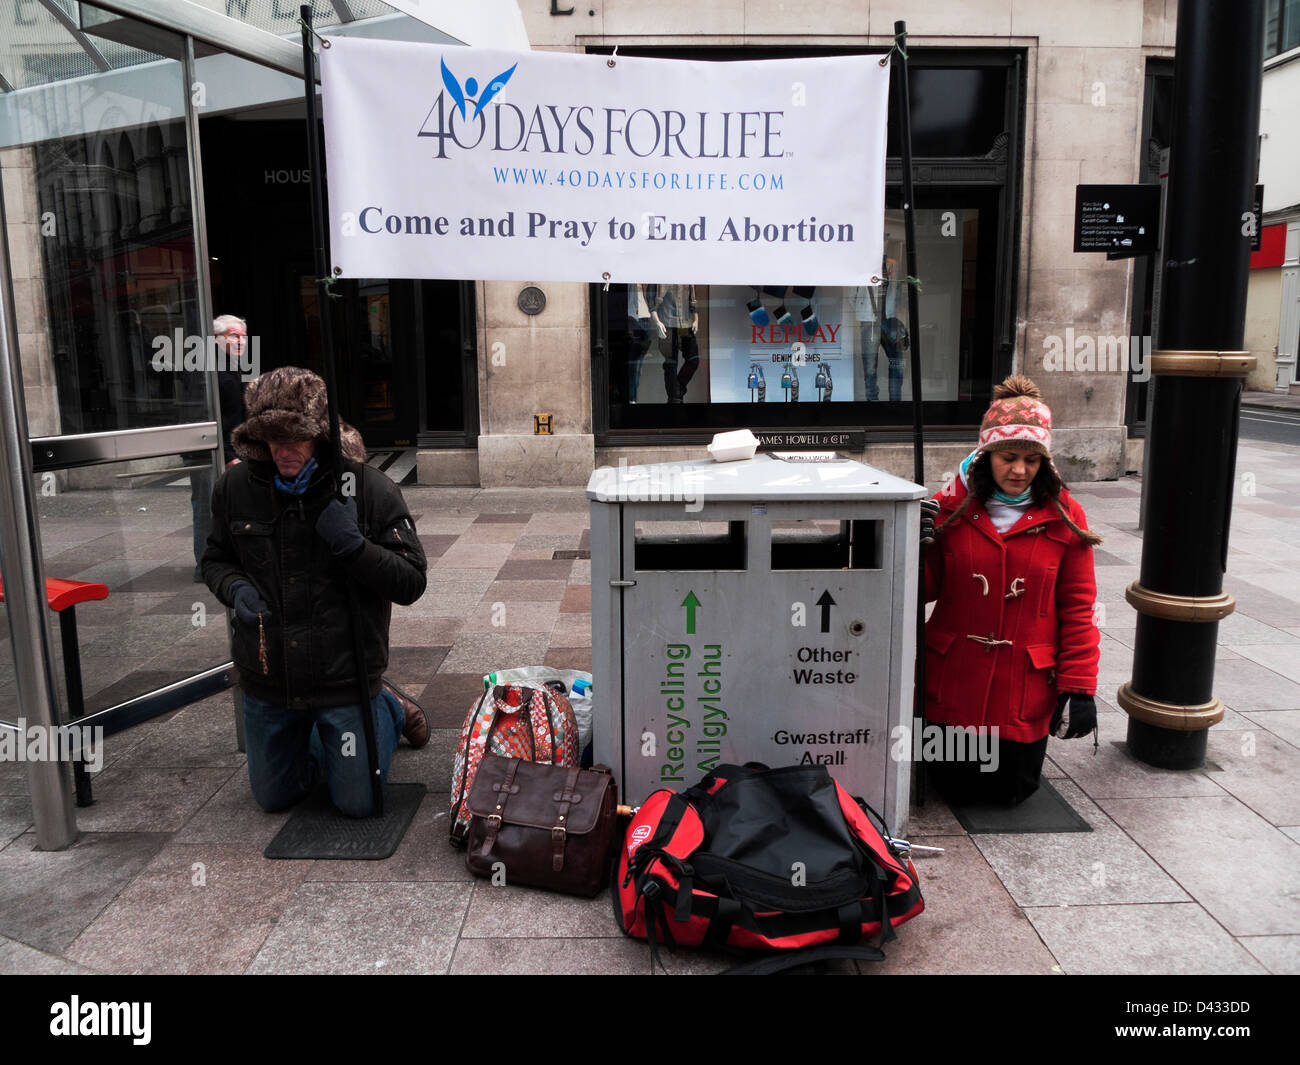 Anti abortion pro life protesters praying on knees with 40 days for life banner St. Mary Street Cardiff Wales UK - Stock Image